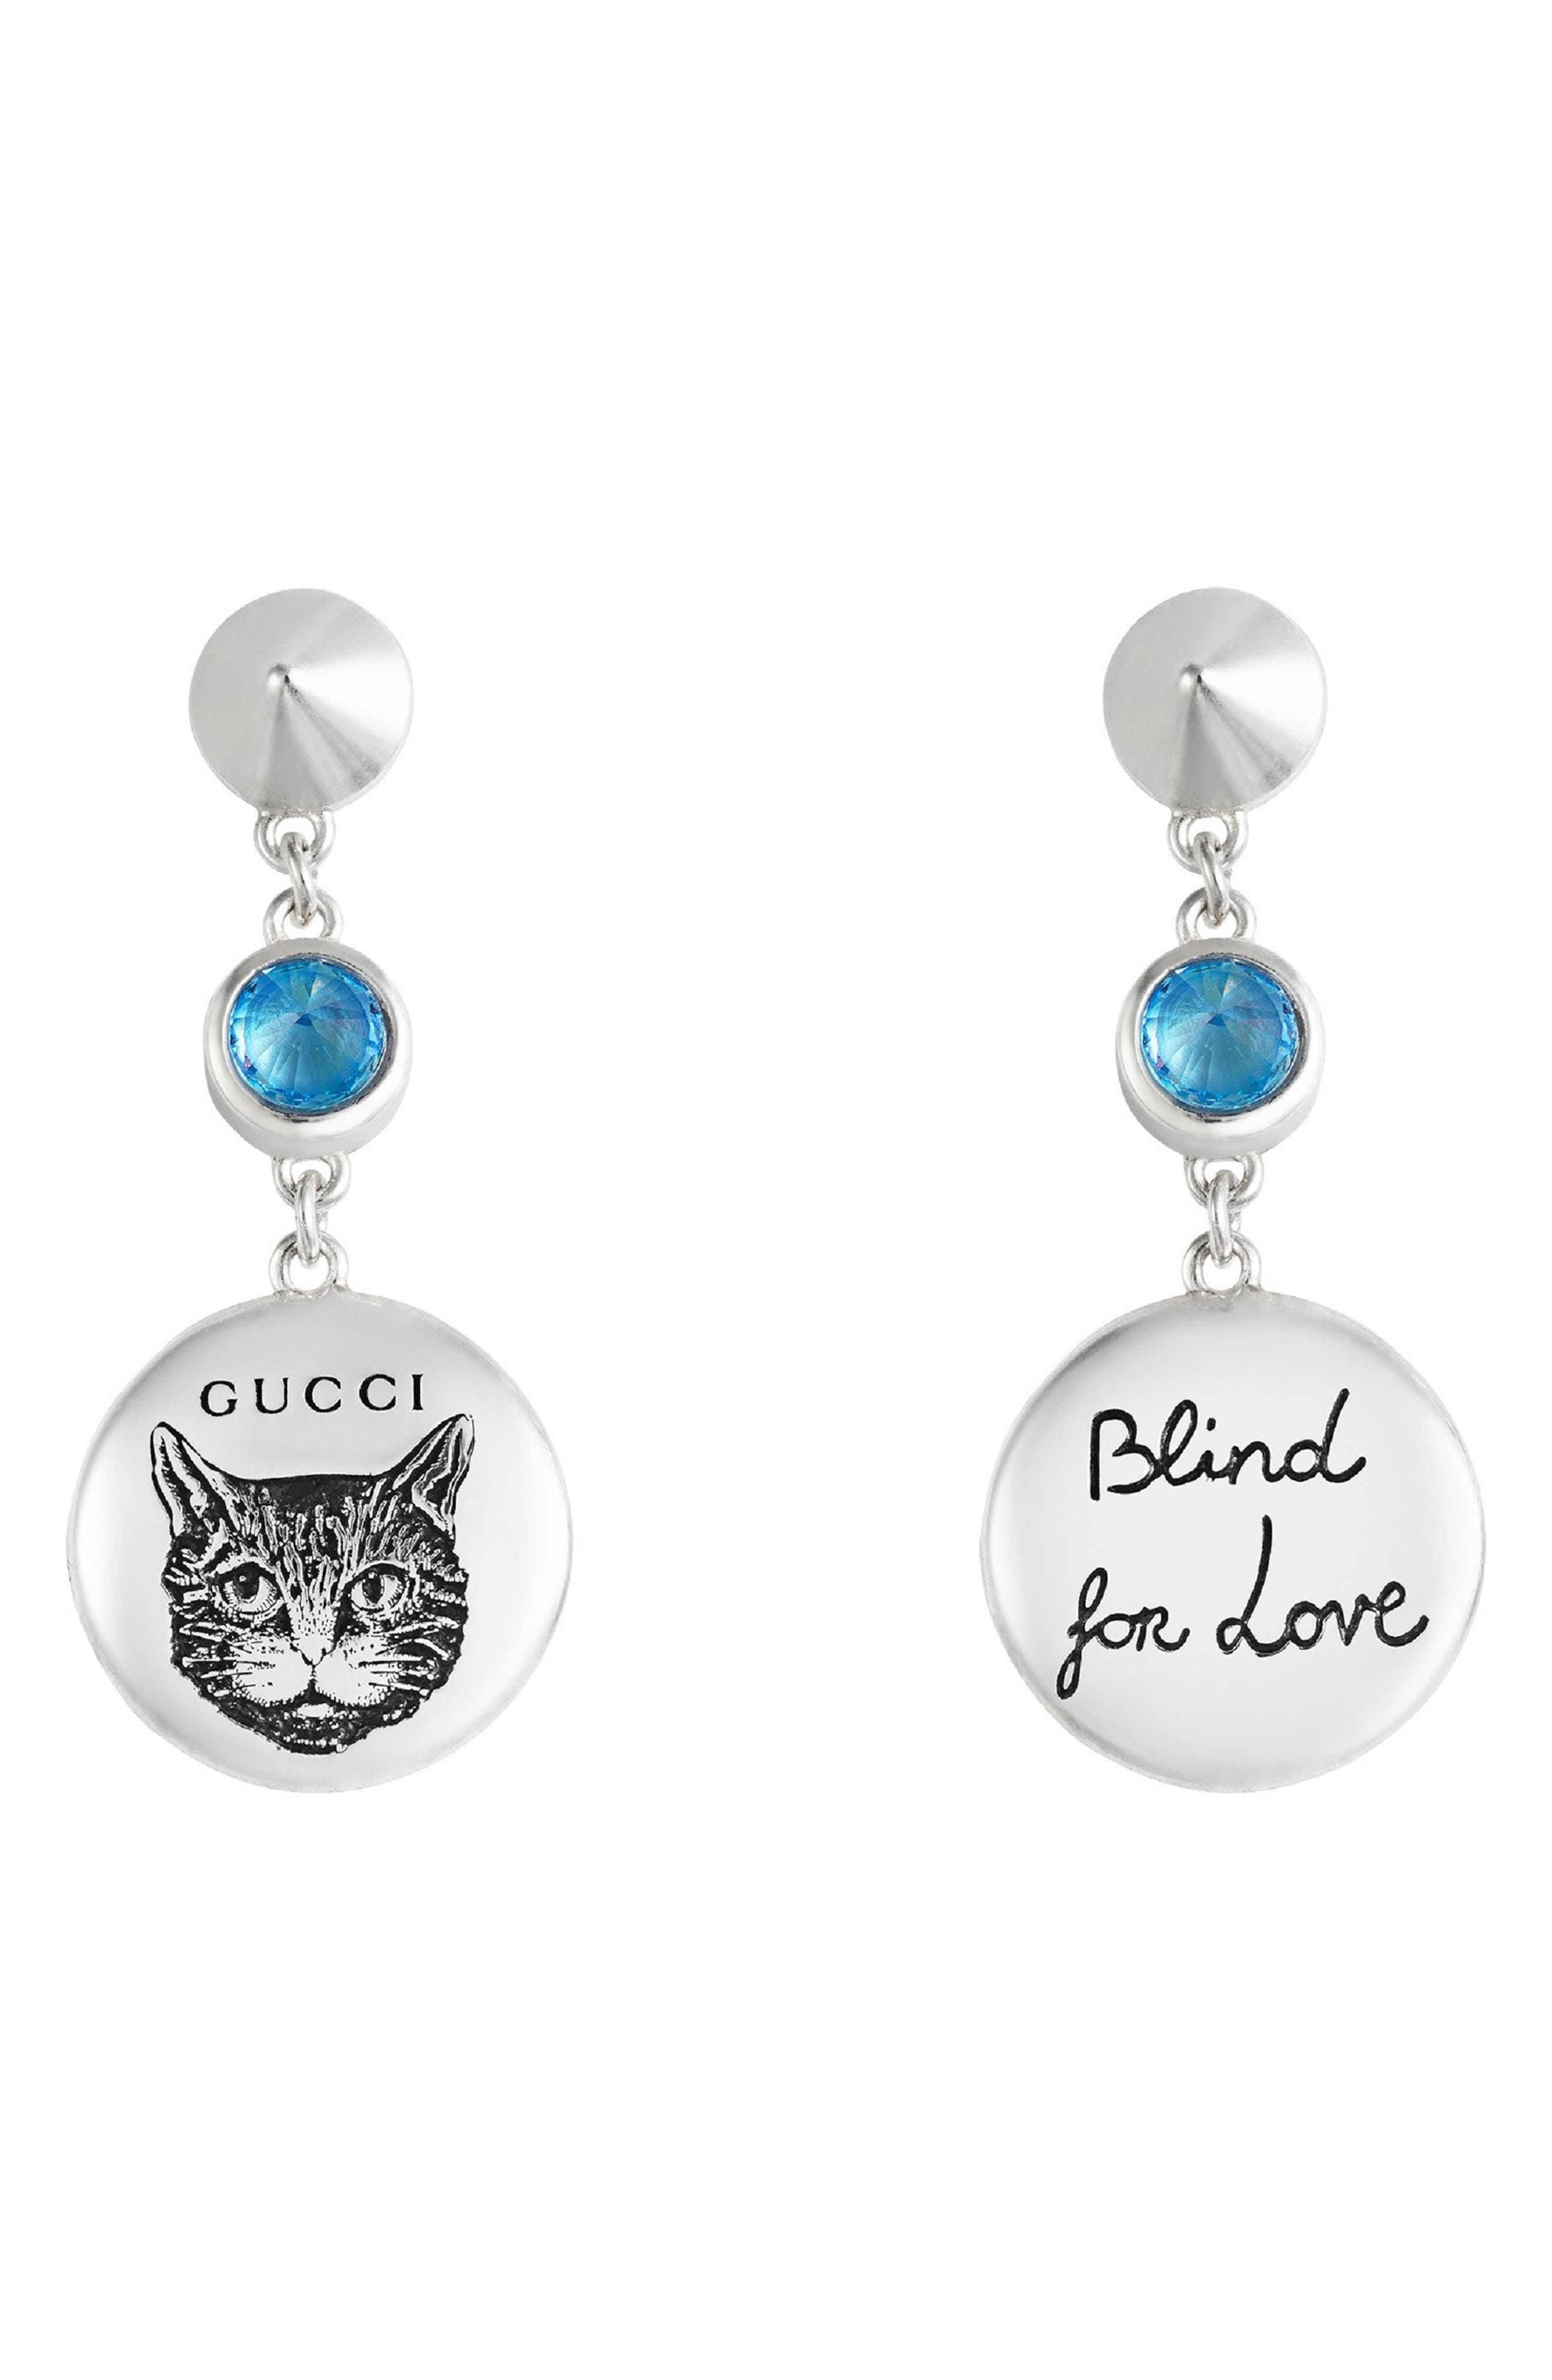 GG Blind for Love Mismatch Drop Earrings, Main, color, STERLING SILVER/ BLUE ZIRCONIA